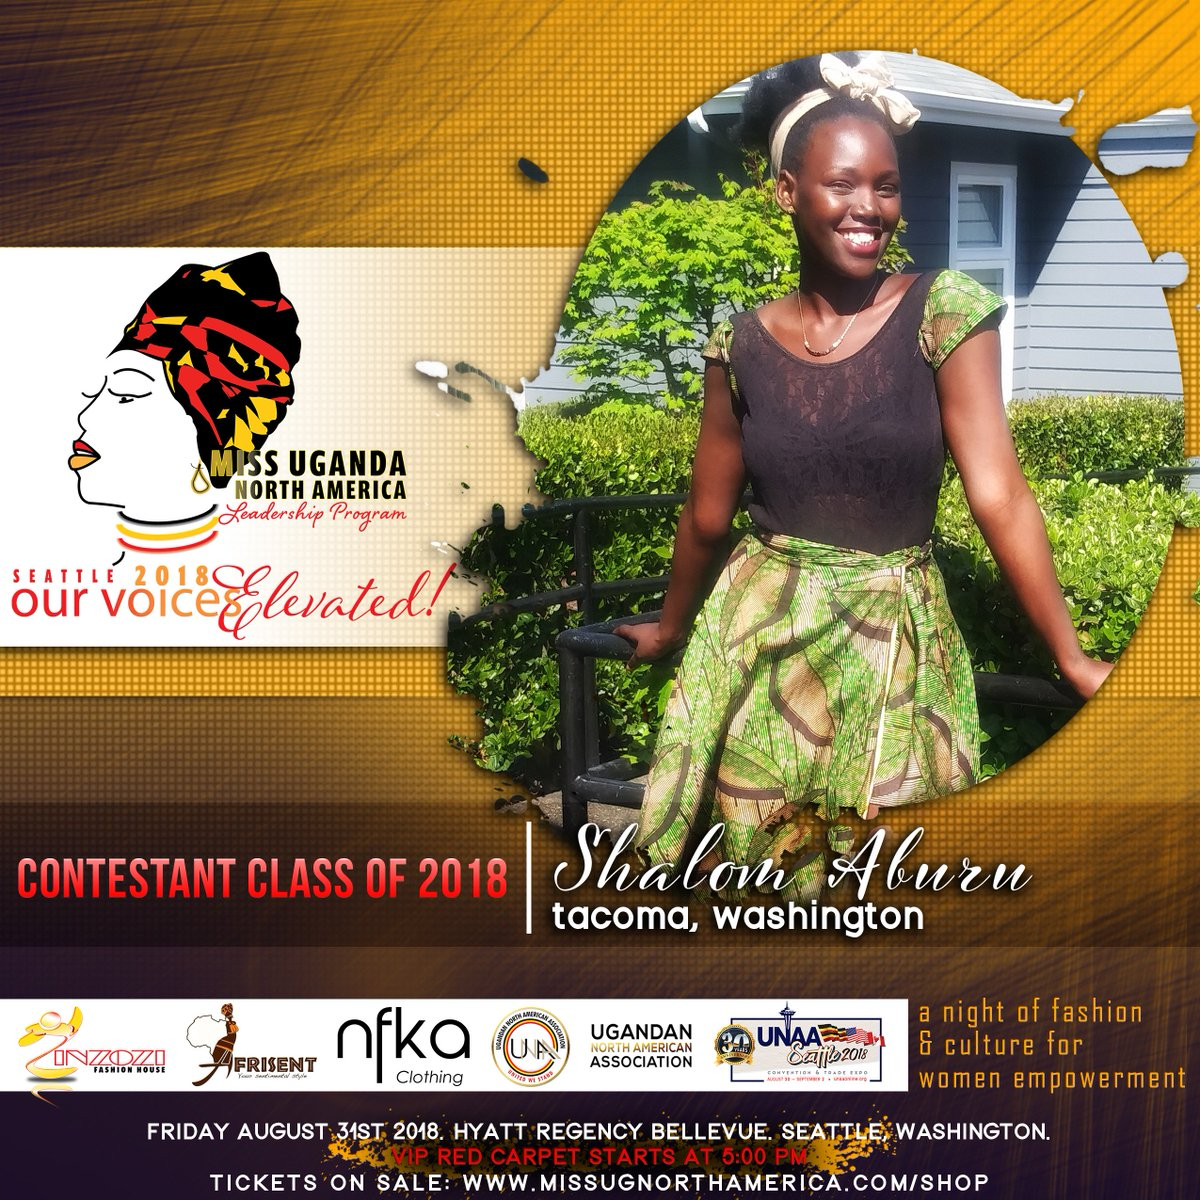 Miss Uganda North America On Twitter Meet Shalom Aburu From Washington She Is A Fashion Designer Also Works With A Non Profit In Uganda That Helps Youth To Access Education Opportunities